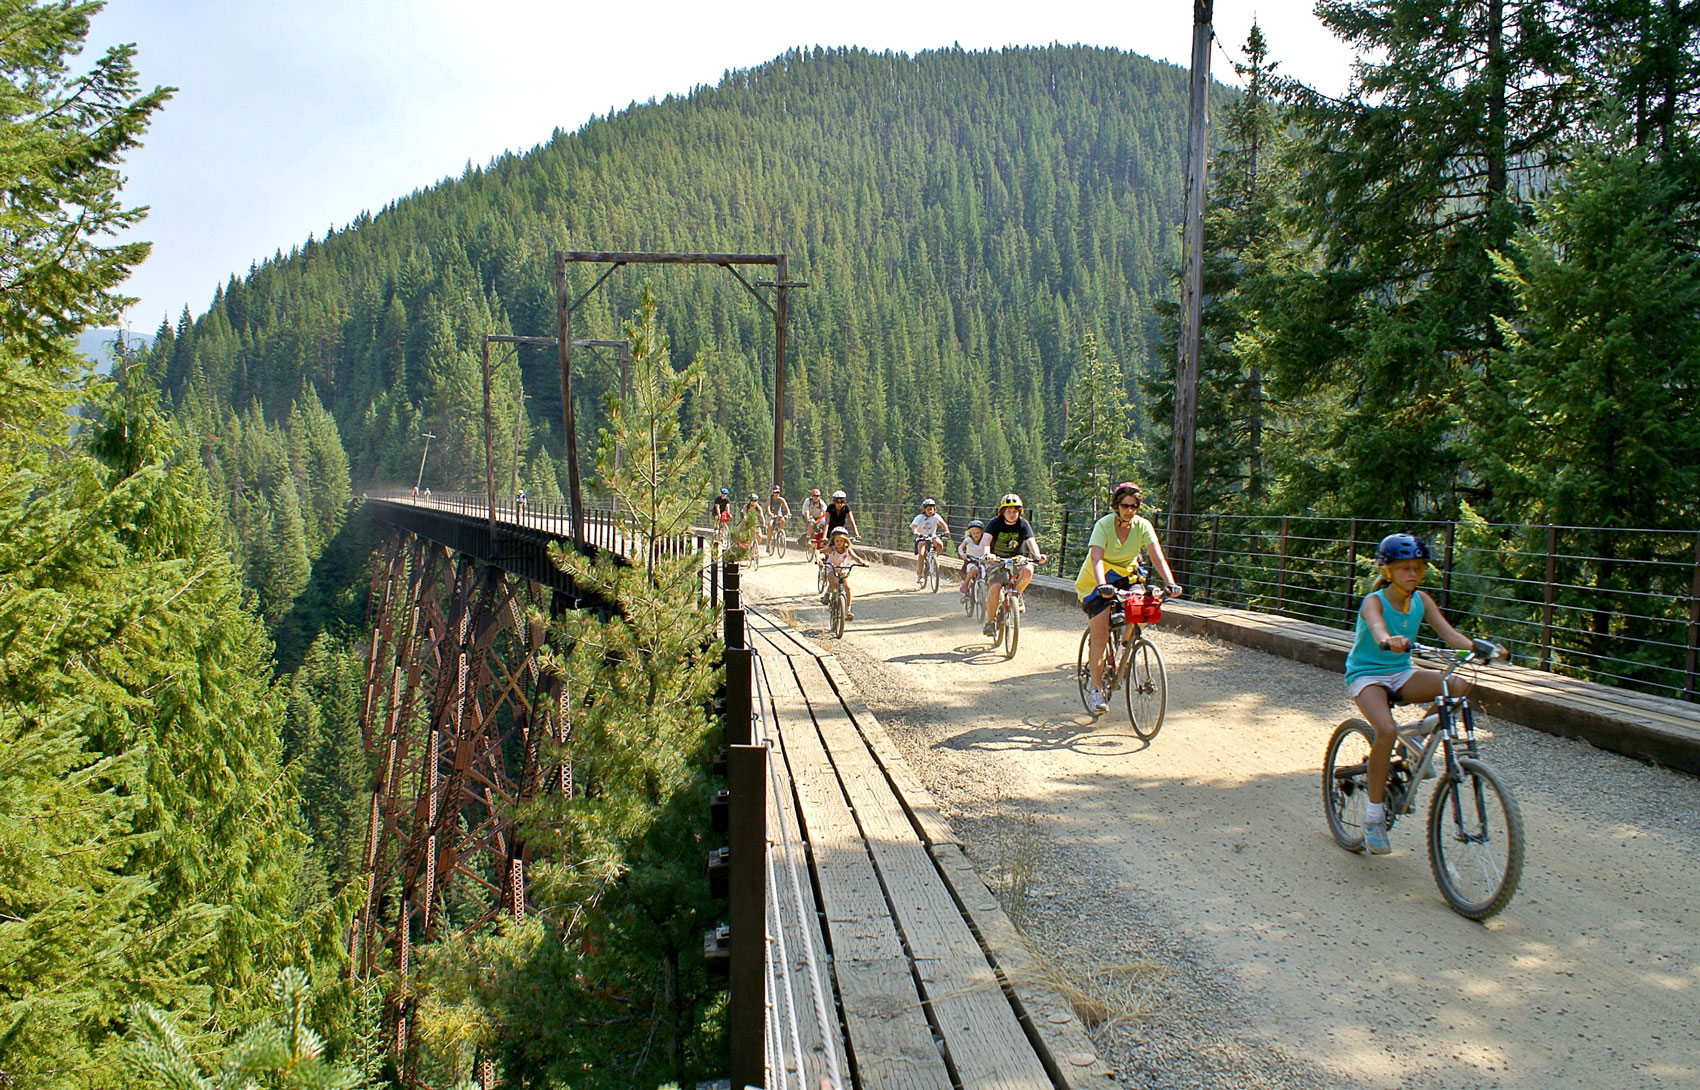 Route of the Hiawatha Idaho Biking Adventure